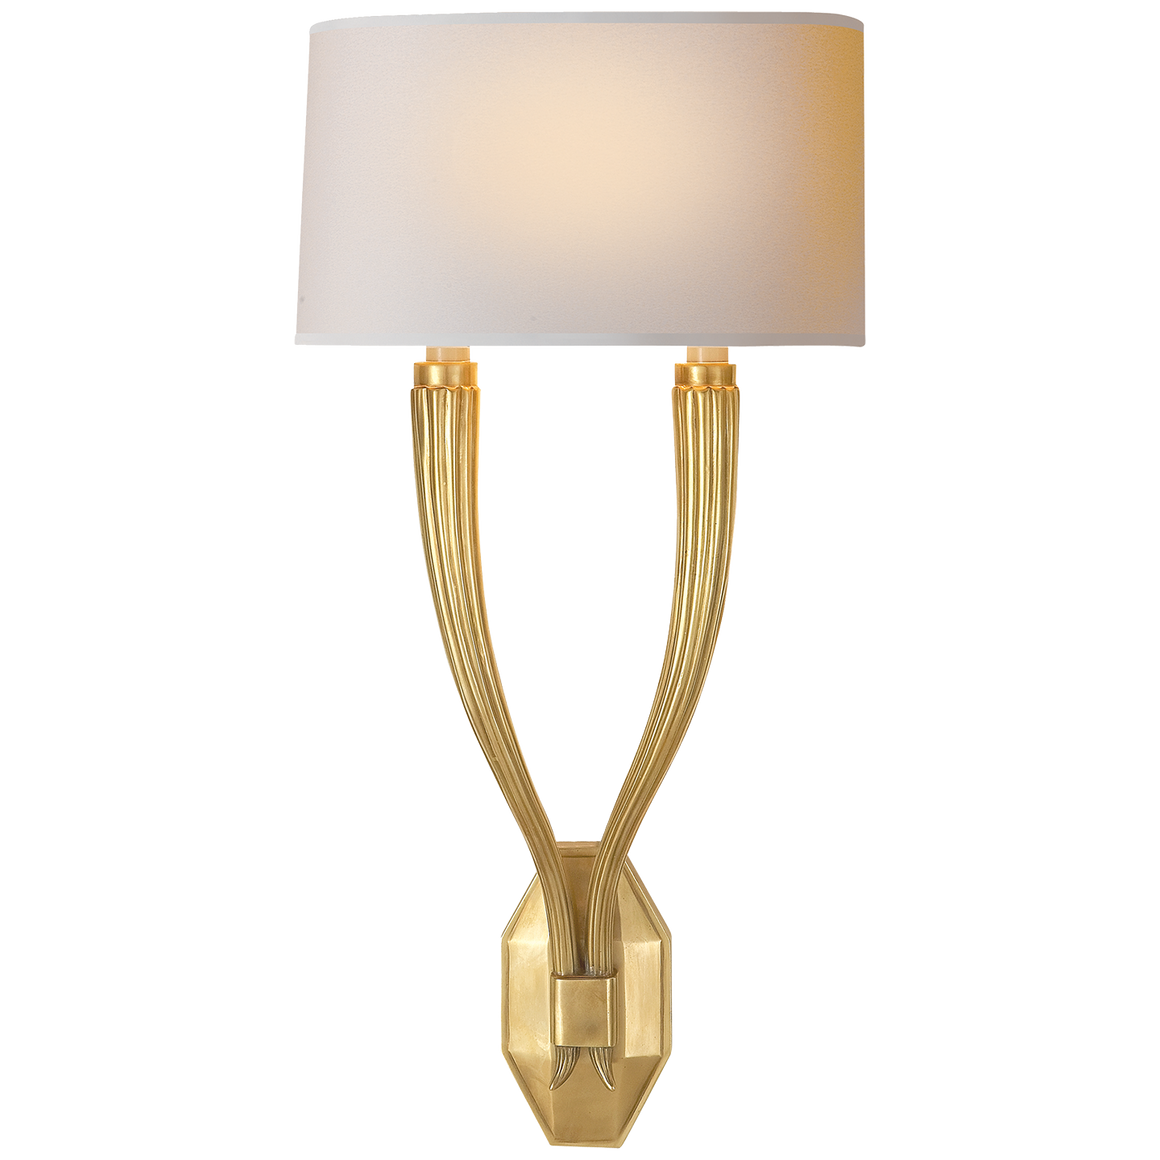 Ruhlmann Double Sconce